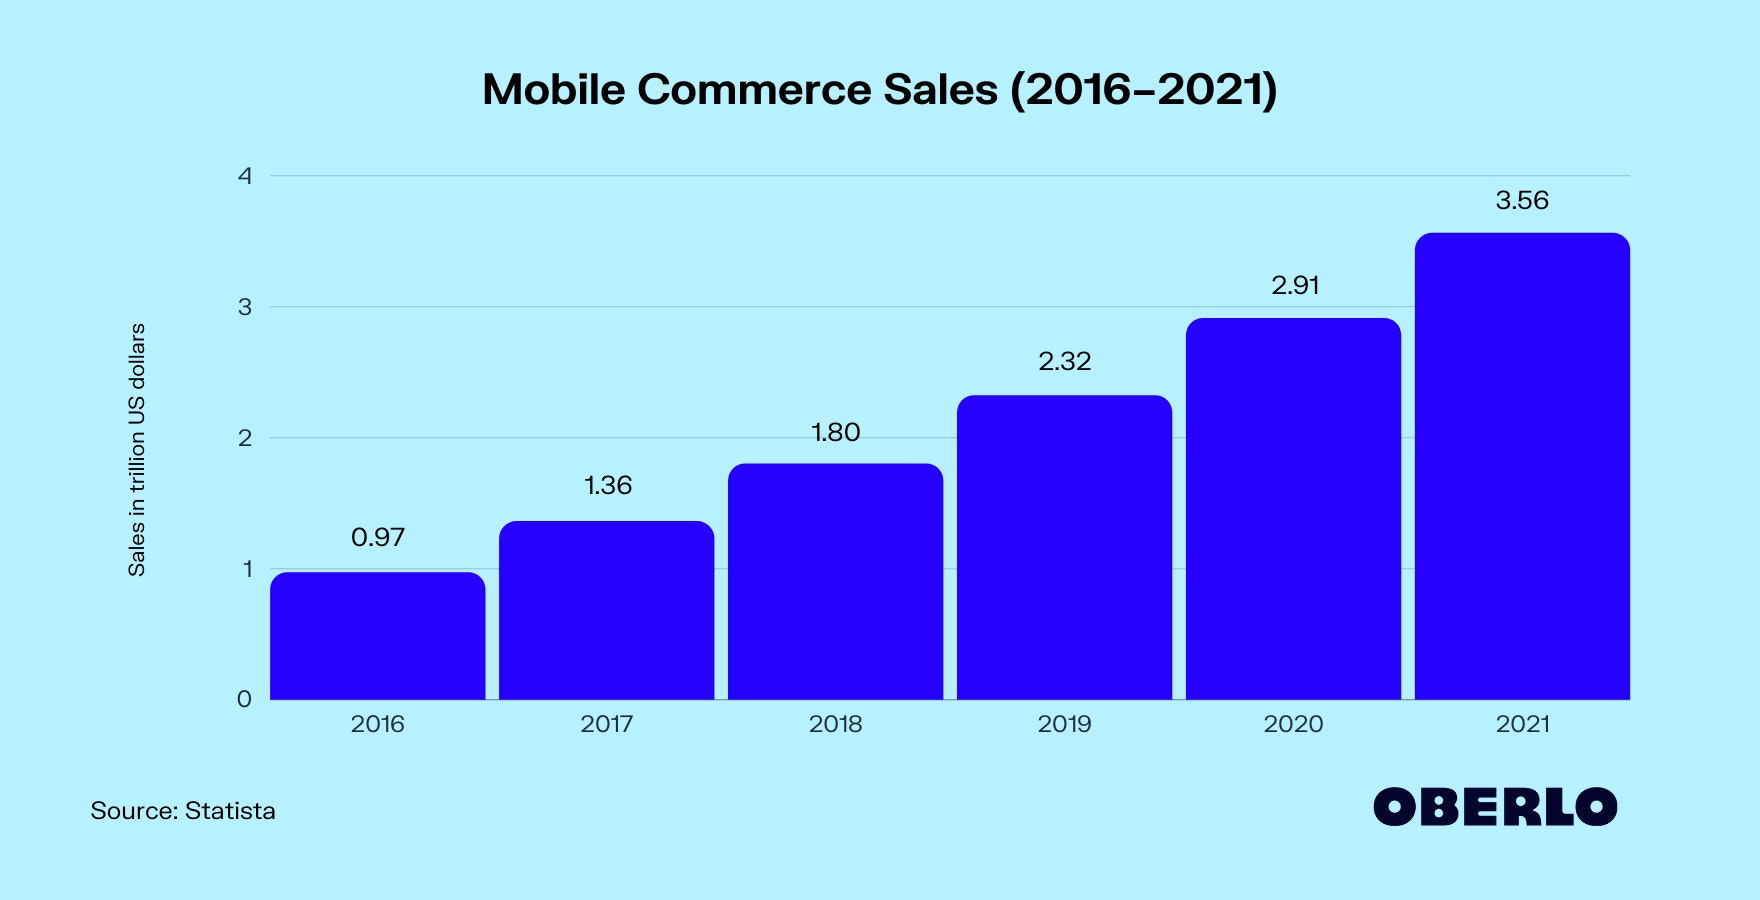 Mobile Commerce Sales in 2021